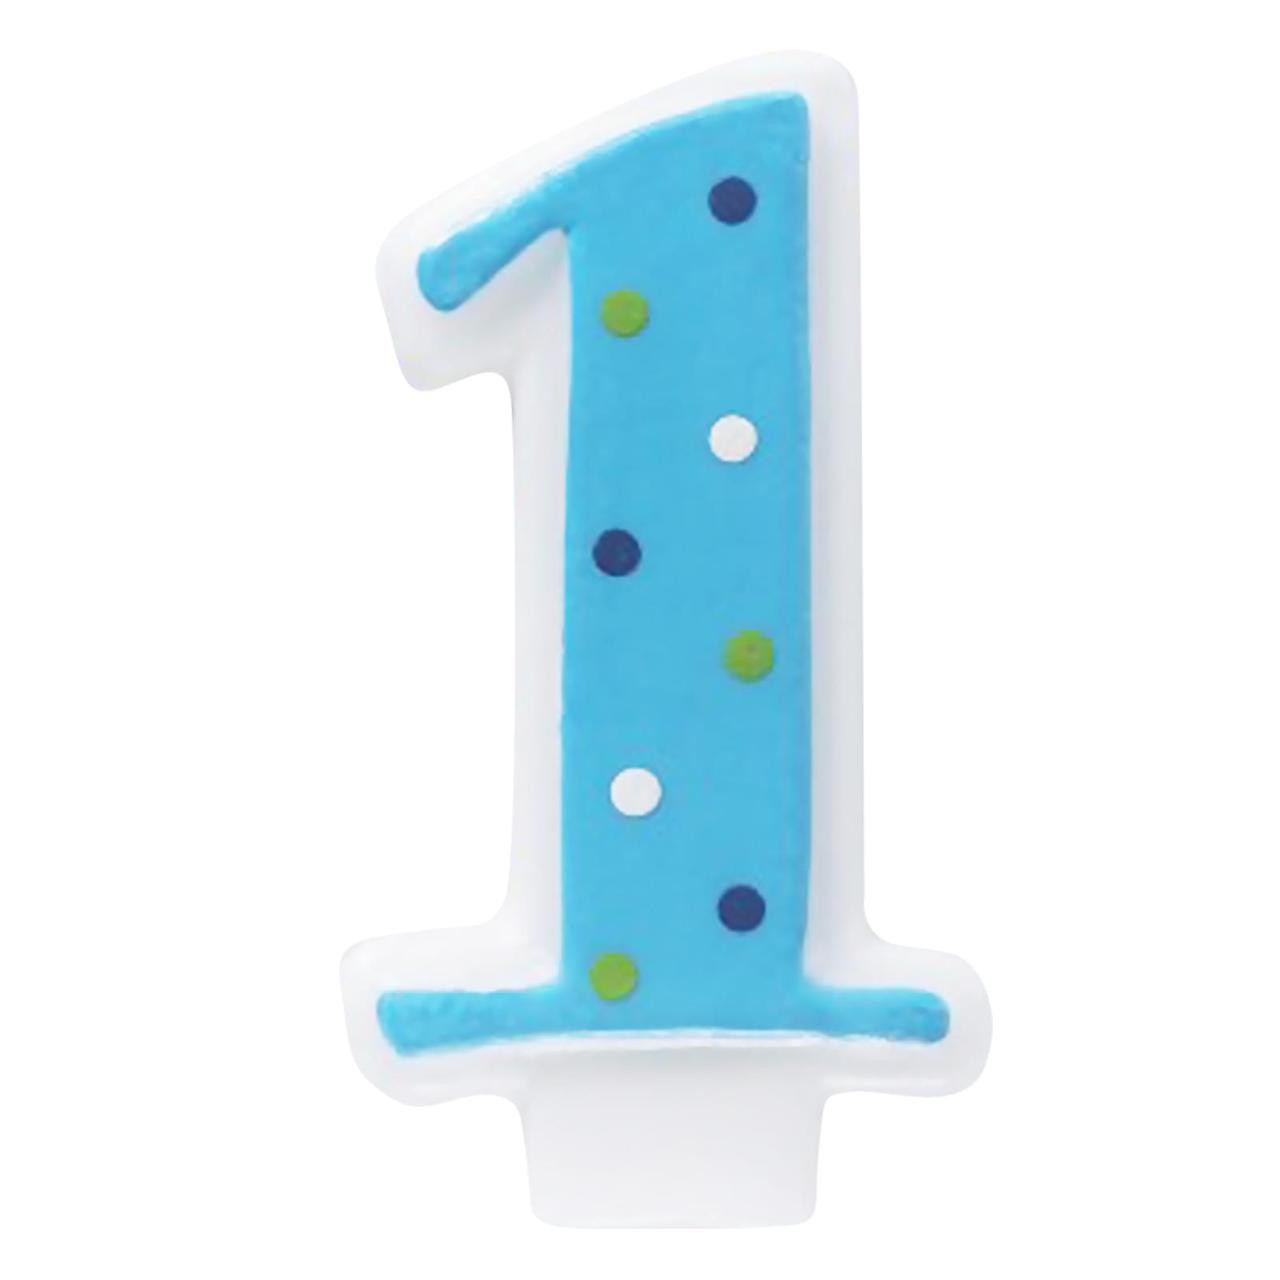 Pink 1st Birthday Polka Dot Candle: Blue #1 Candle With Polka Dots